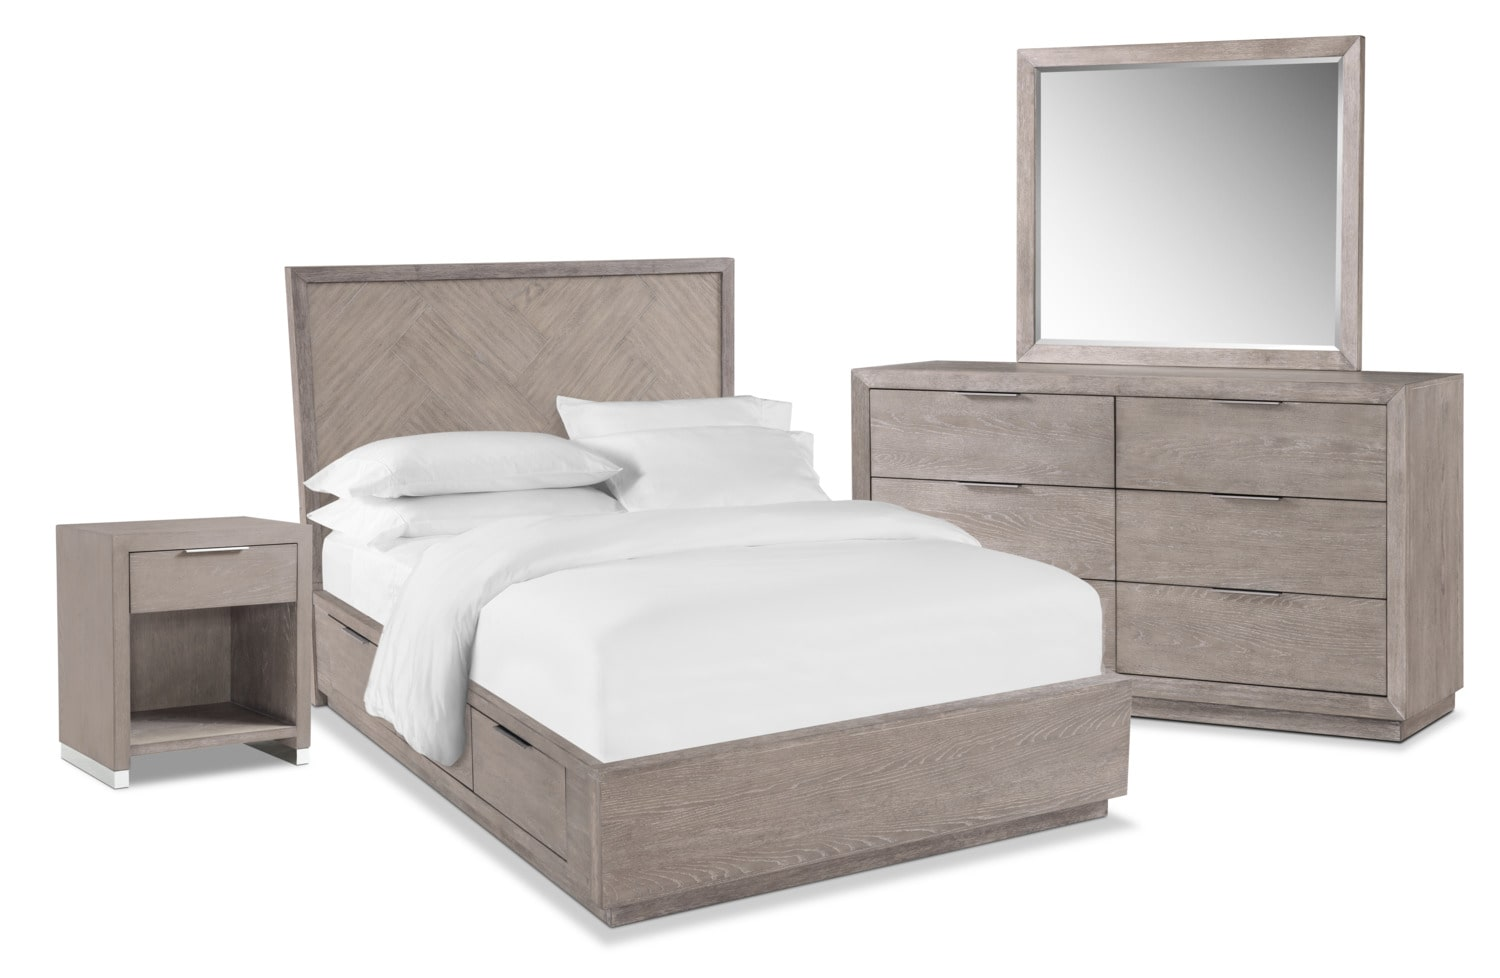 Bedroom Furniture - Zen 6-Piece Storage Bedroom Set with Nightstand, Dresser and Mirror